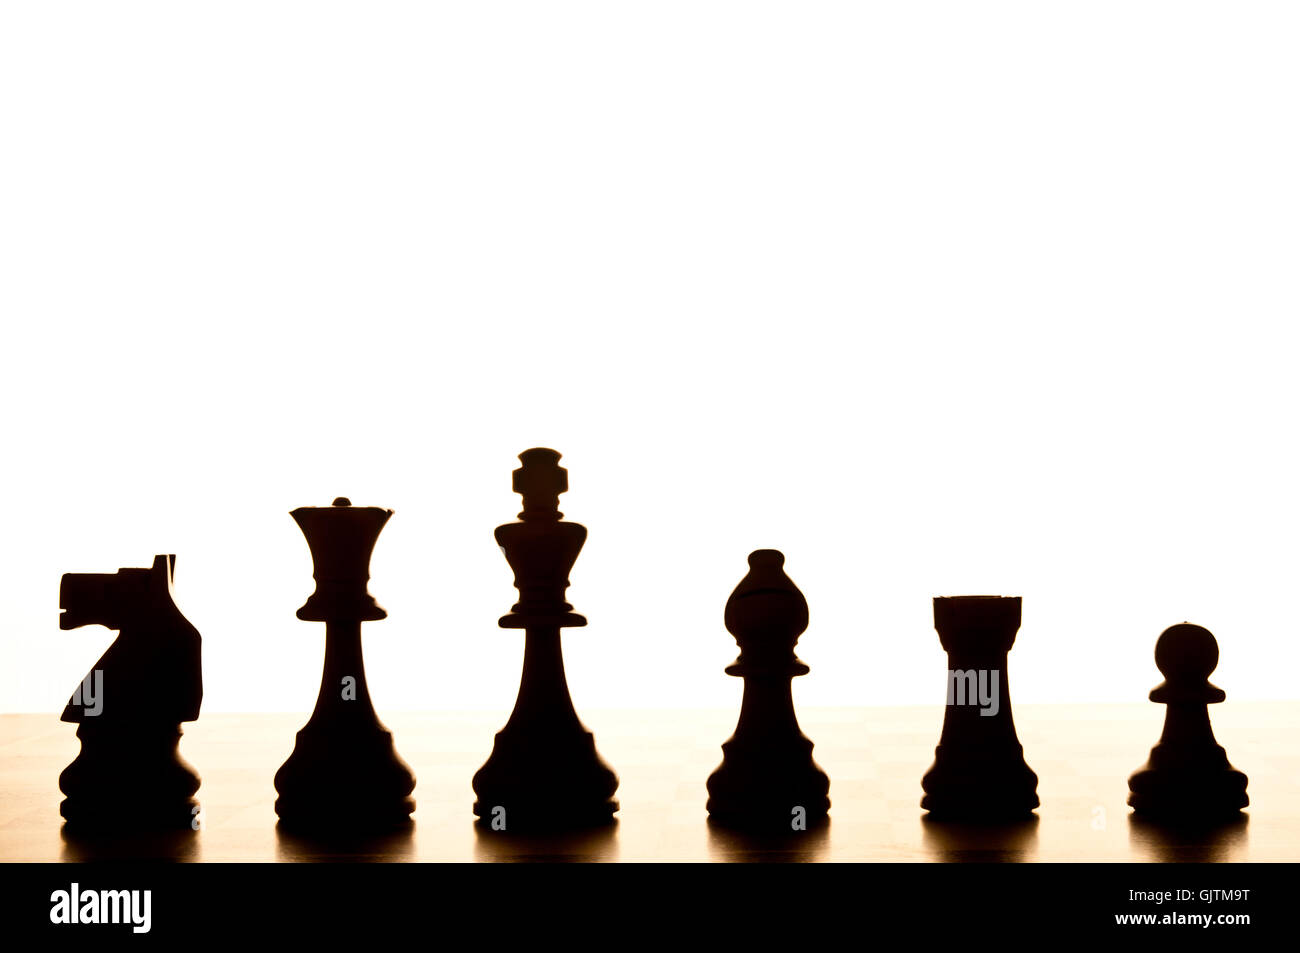 chess pieces in silhouette - Stock Image